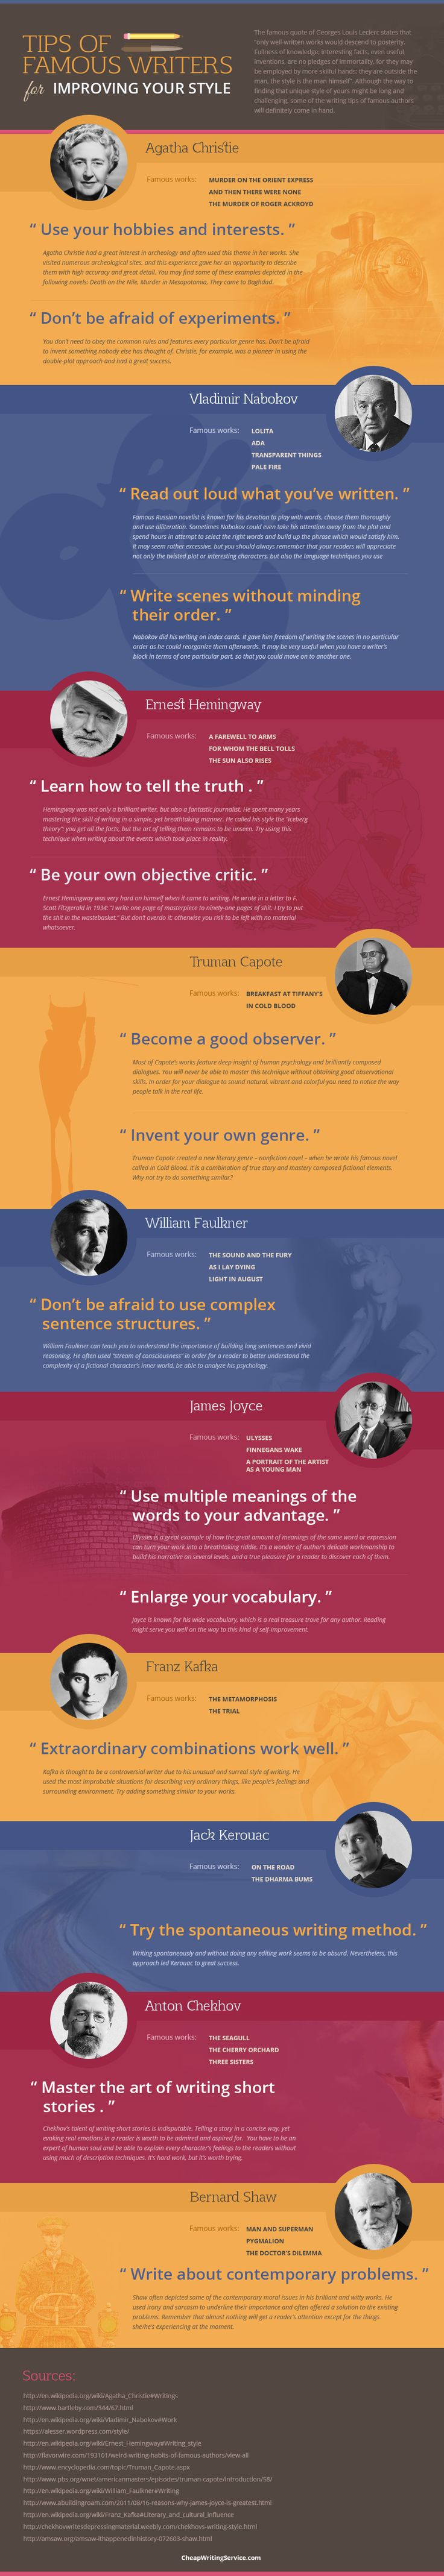 Tips of Famous Writers for Improving Your Style #infographic #Writing #Education